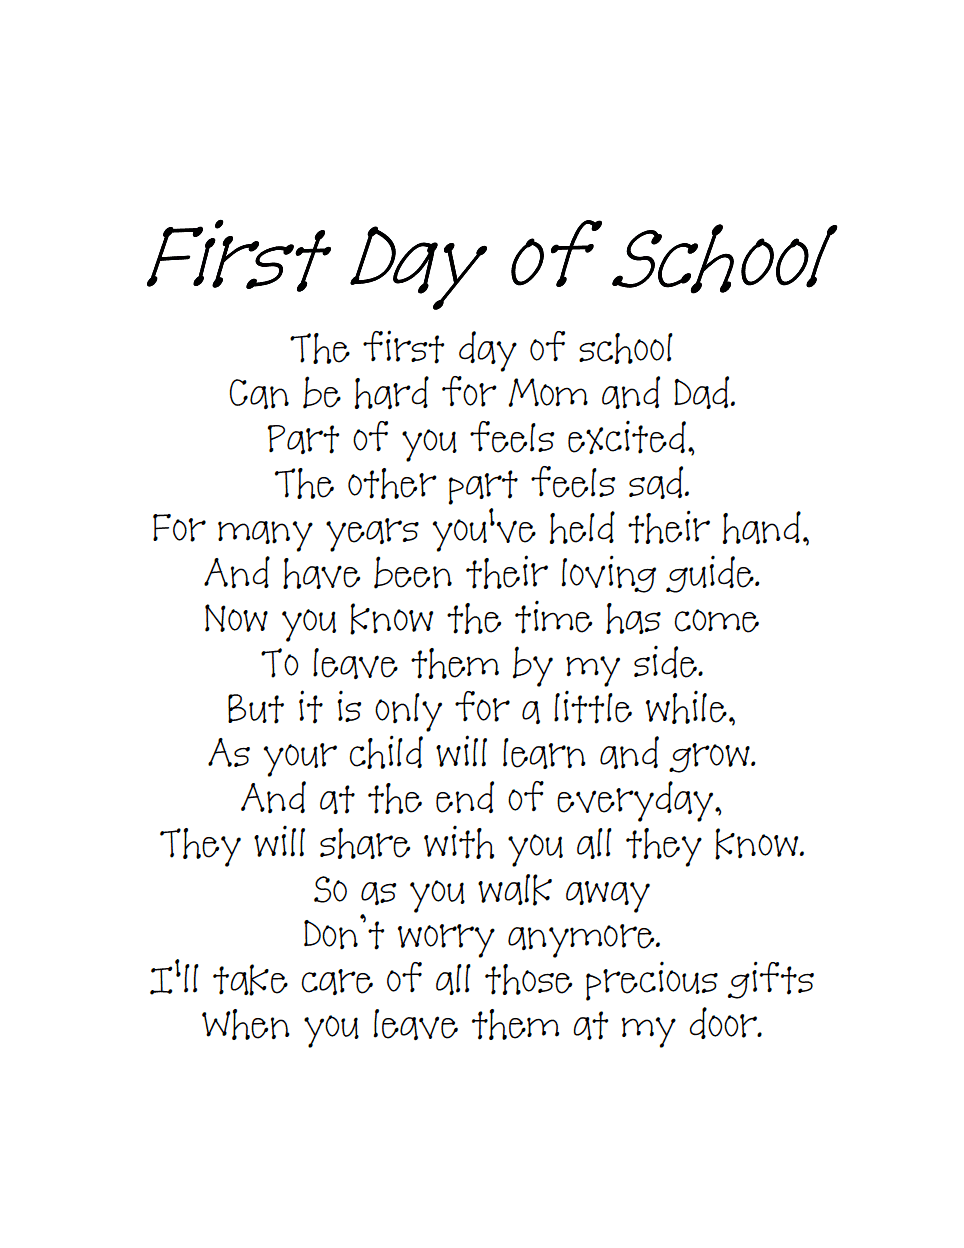 Back to school poempdf send home with a first day picture school back to school poempdf send home with a first day picture fandeluxe